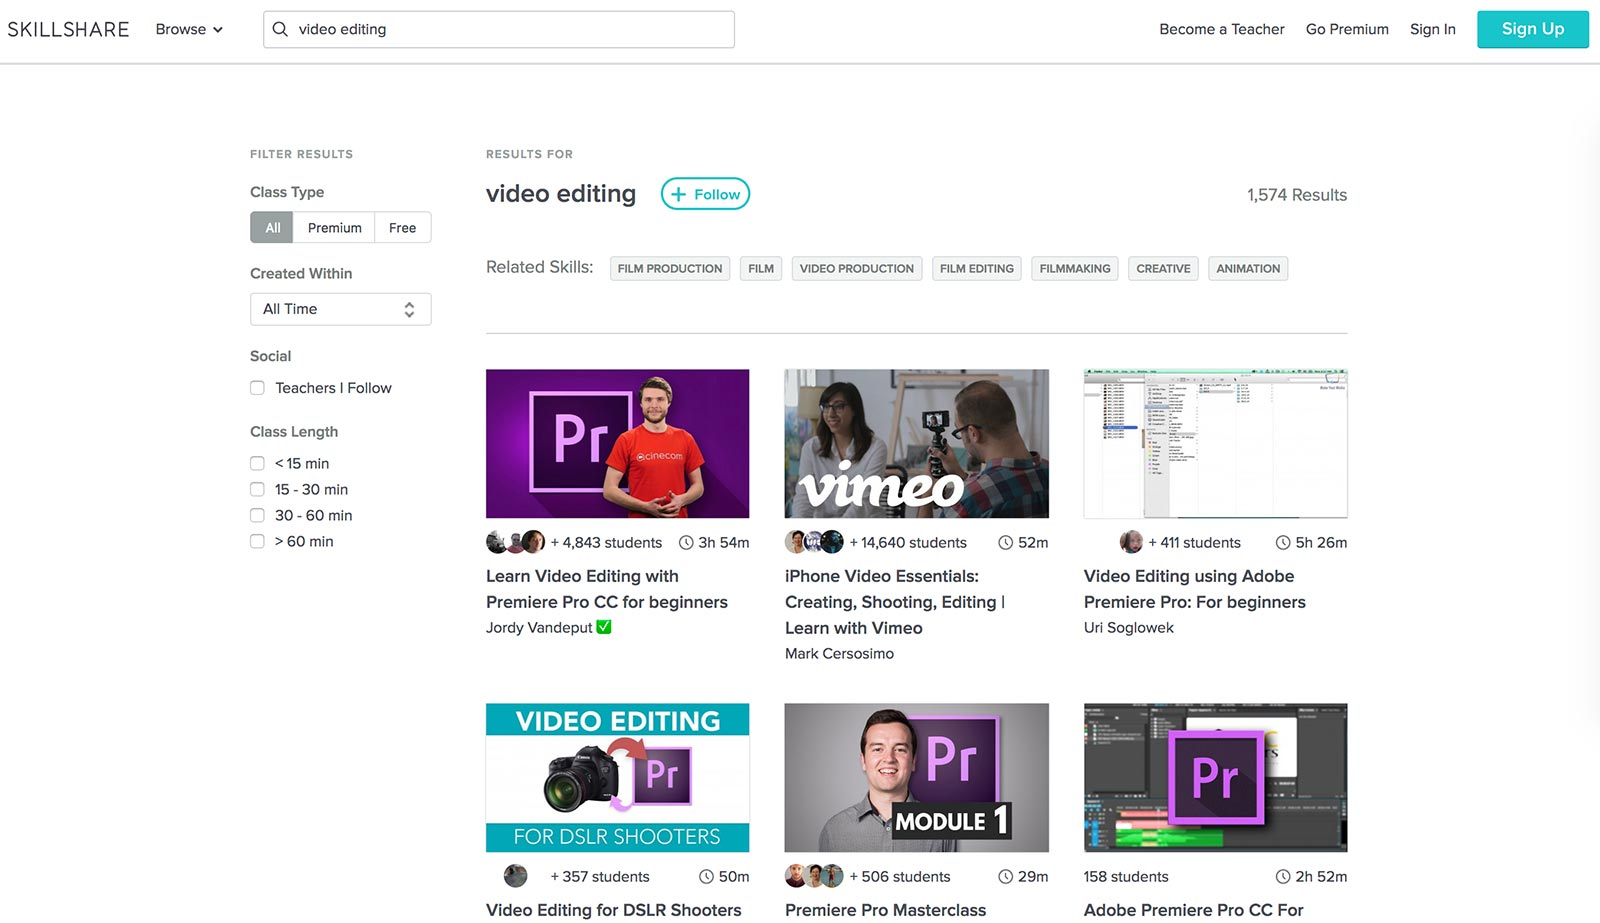 skillshare video editing classes